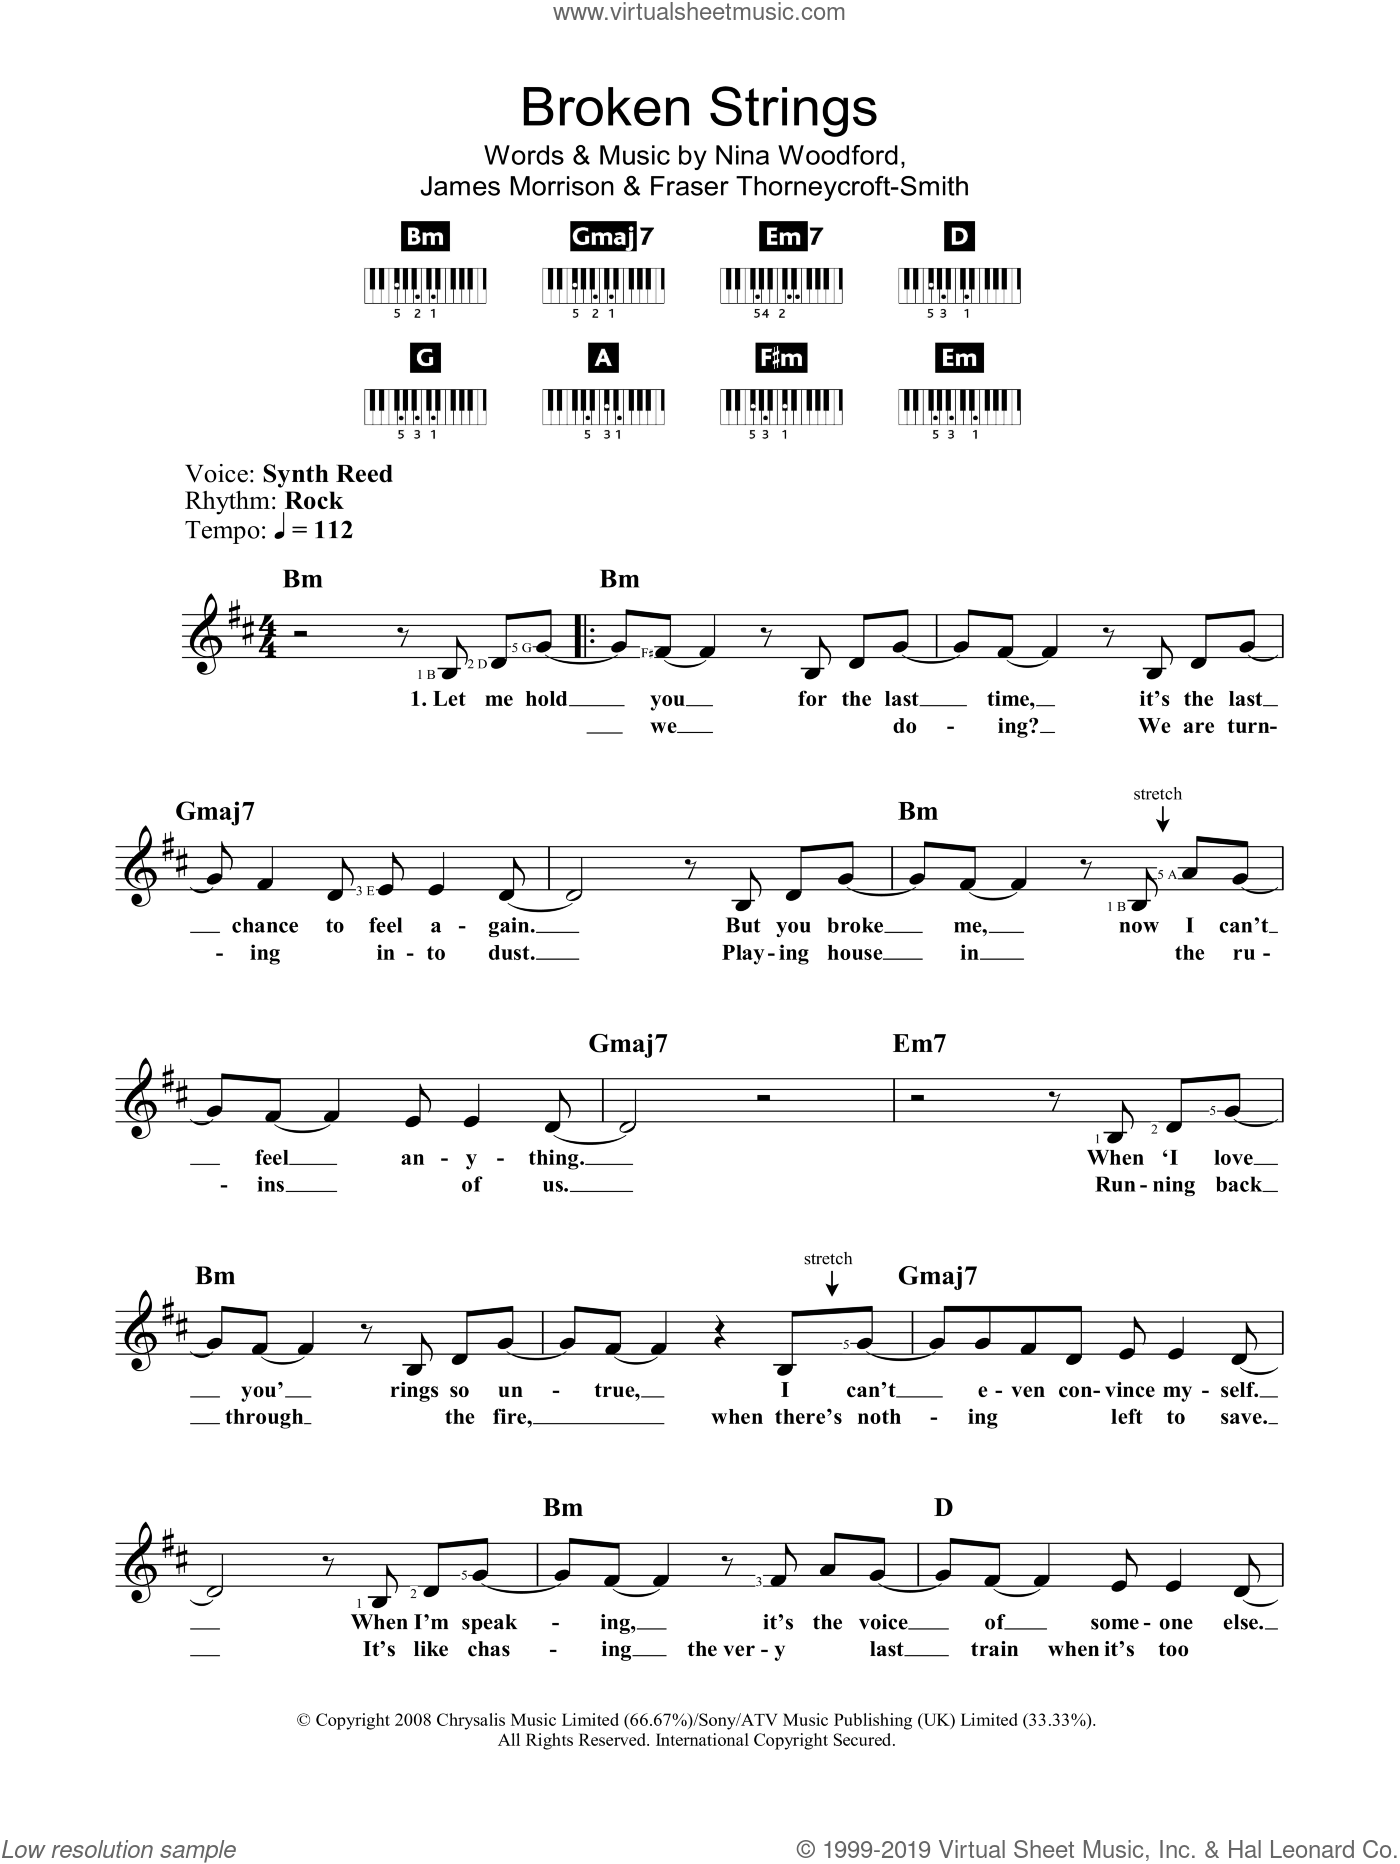 Broken Strings sheet music for voice and other instruments (fake book) by James Morrison featuring Nelly Furtado, James Morrison, Nelly Furtado, Fraser Thorneycroft-Smith and Nina Woodford, intermediate